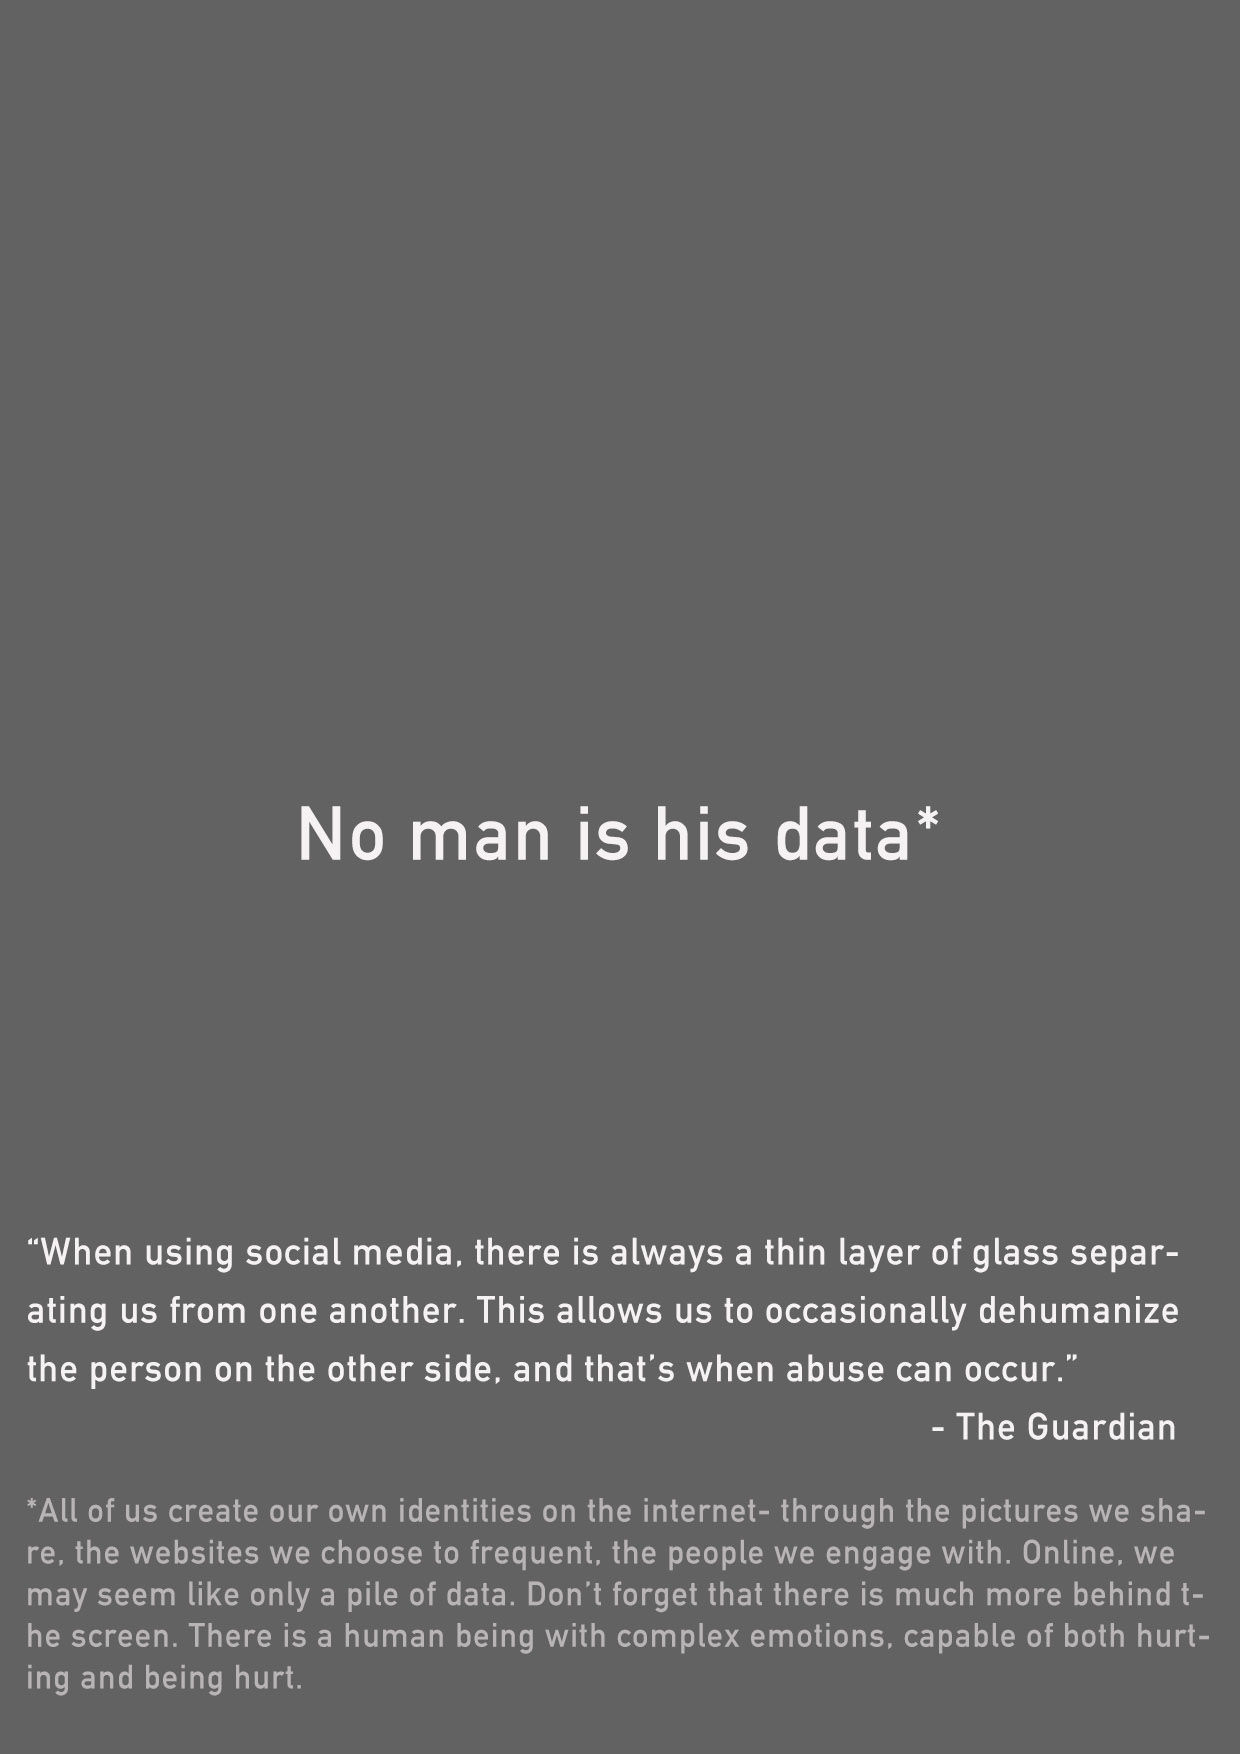 No man is his data